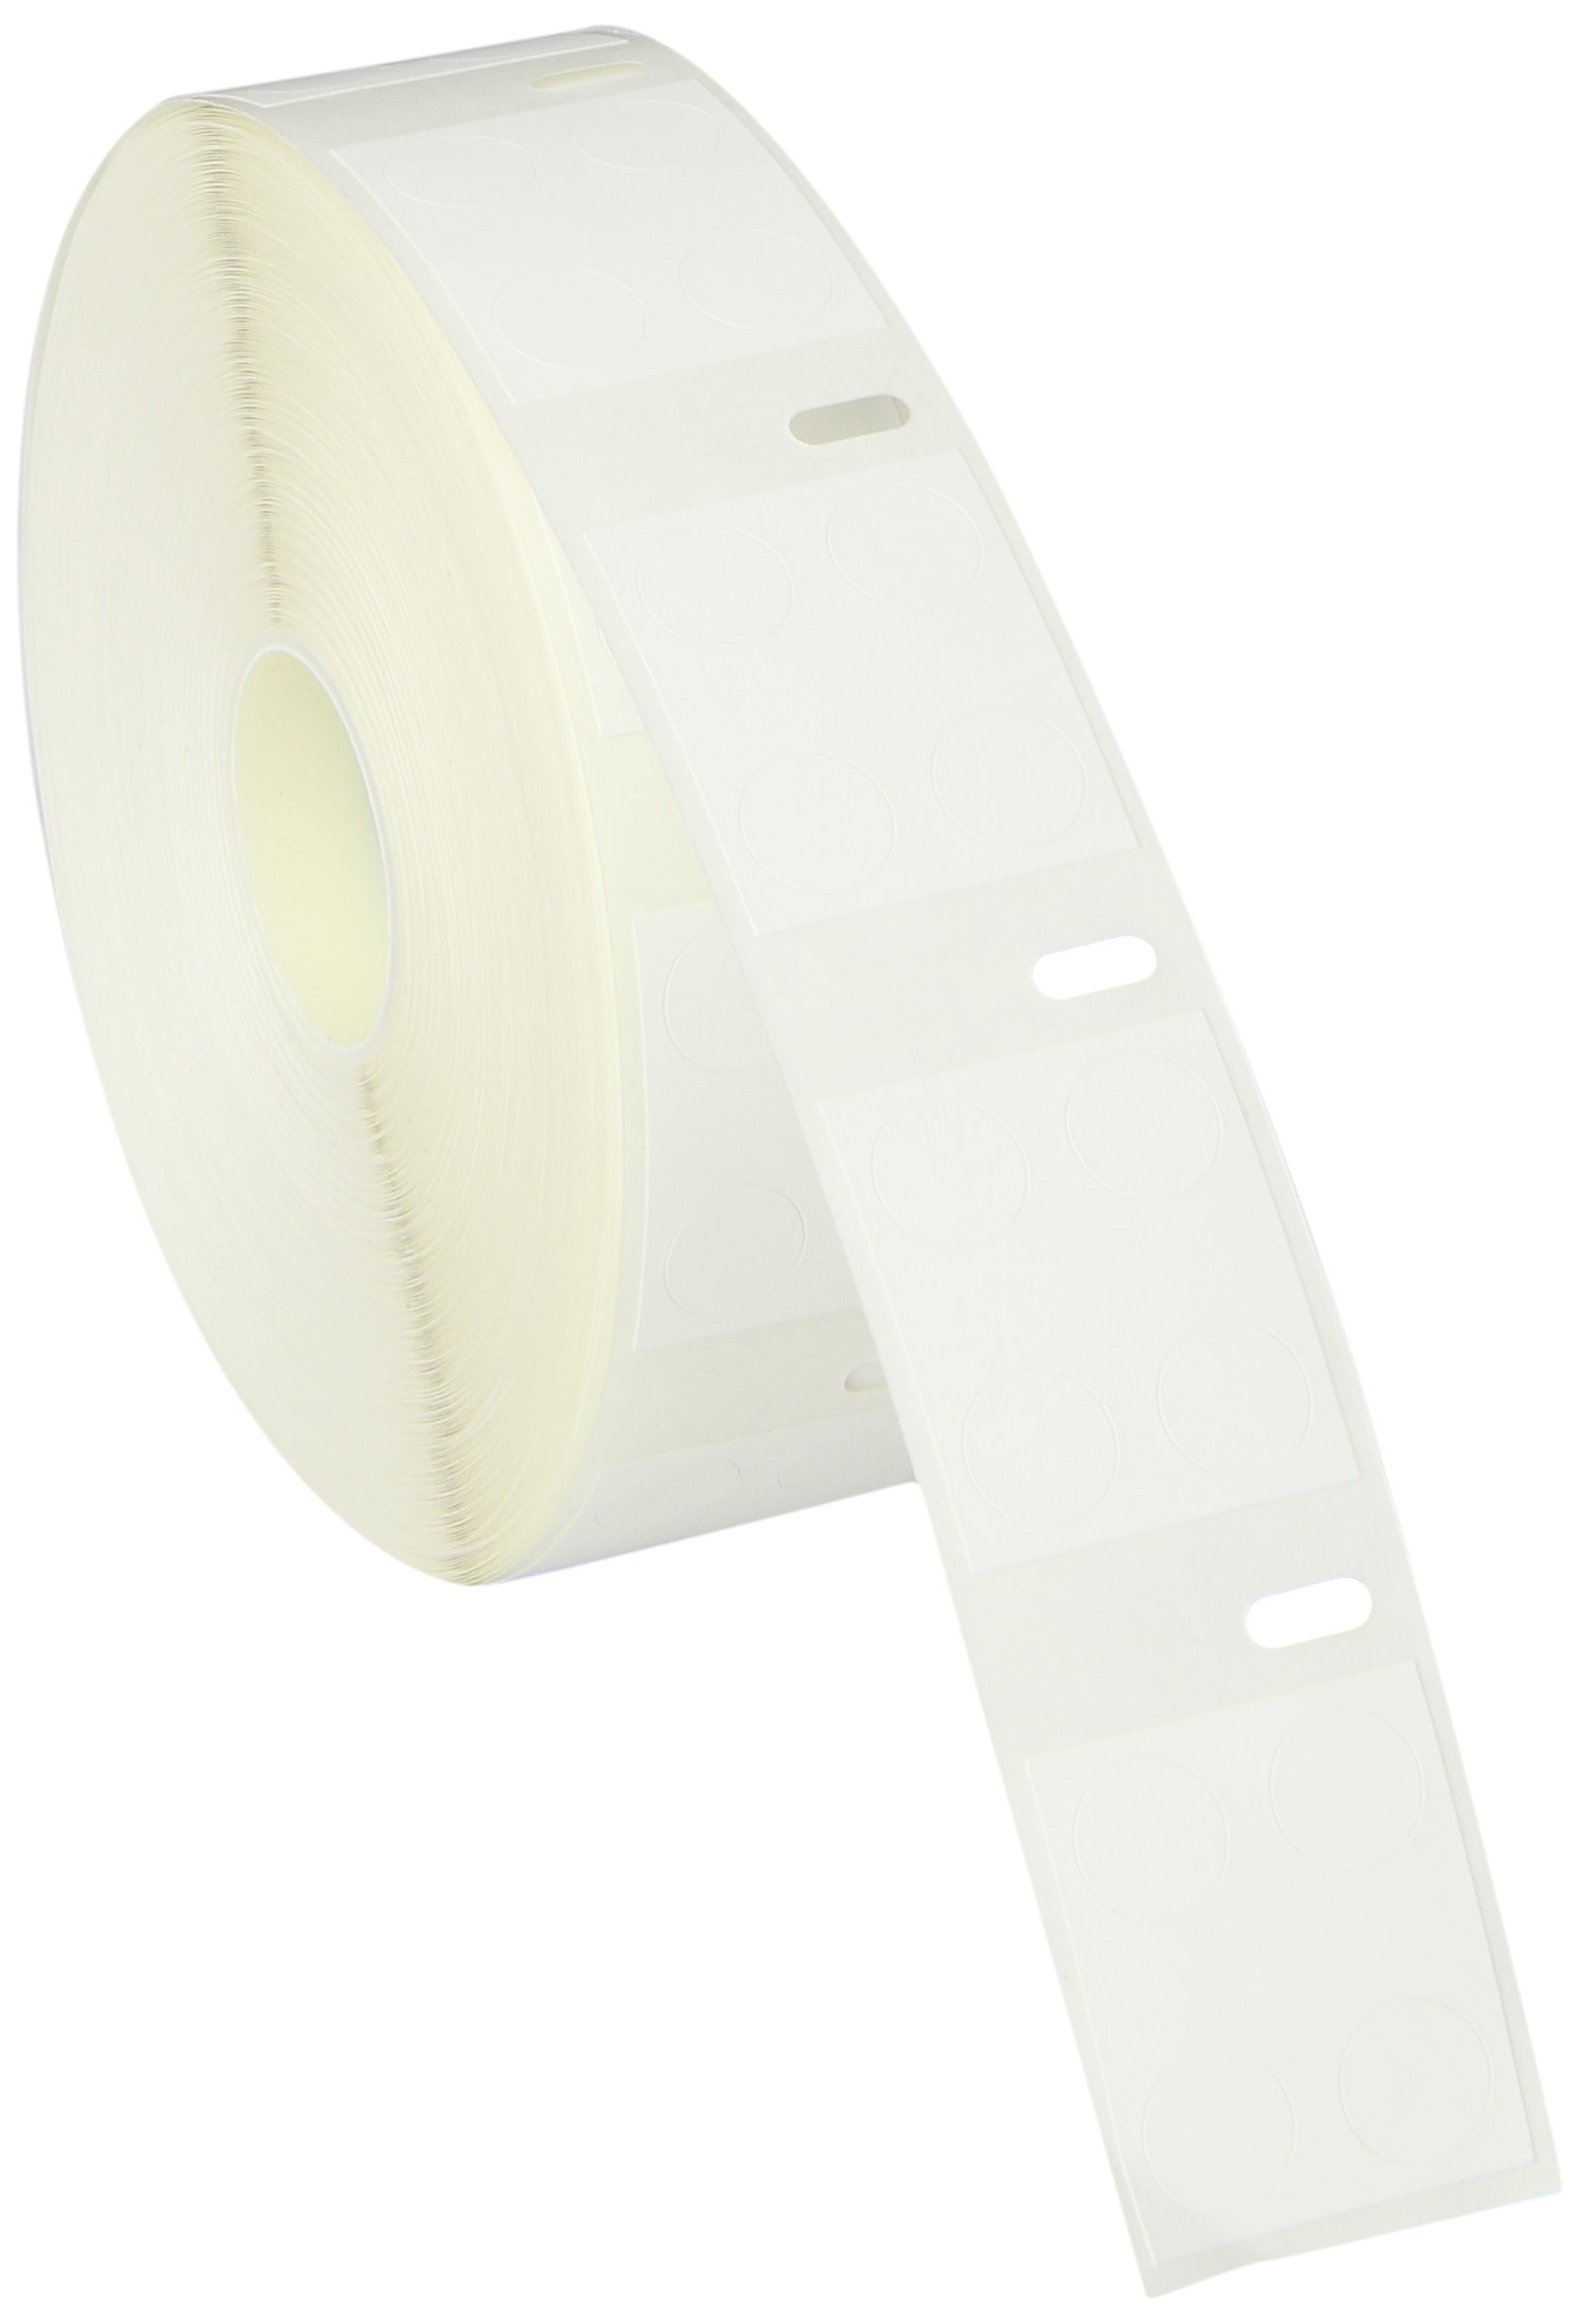 Diversified Biotech DTCR-4000 Direct Thermal Cryo-Tags Label, 3/8'' Diameter (Roll of 1000)